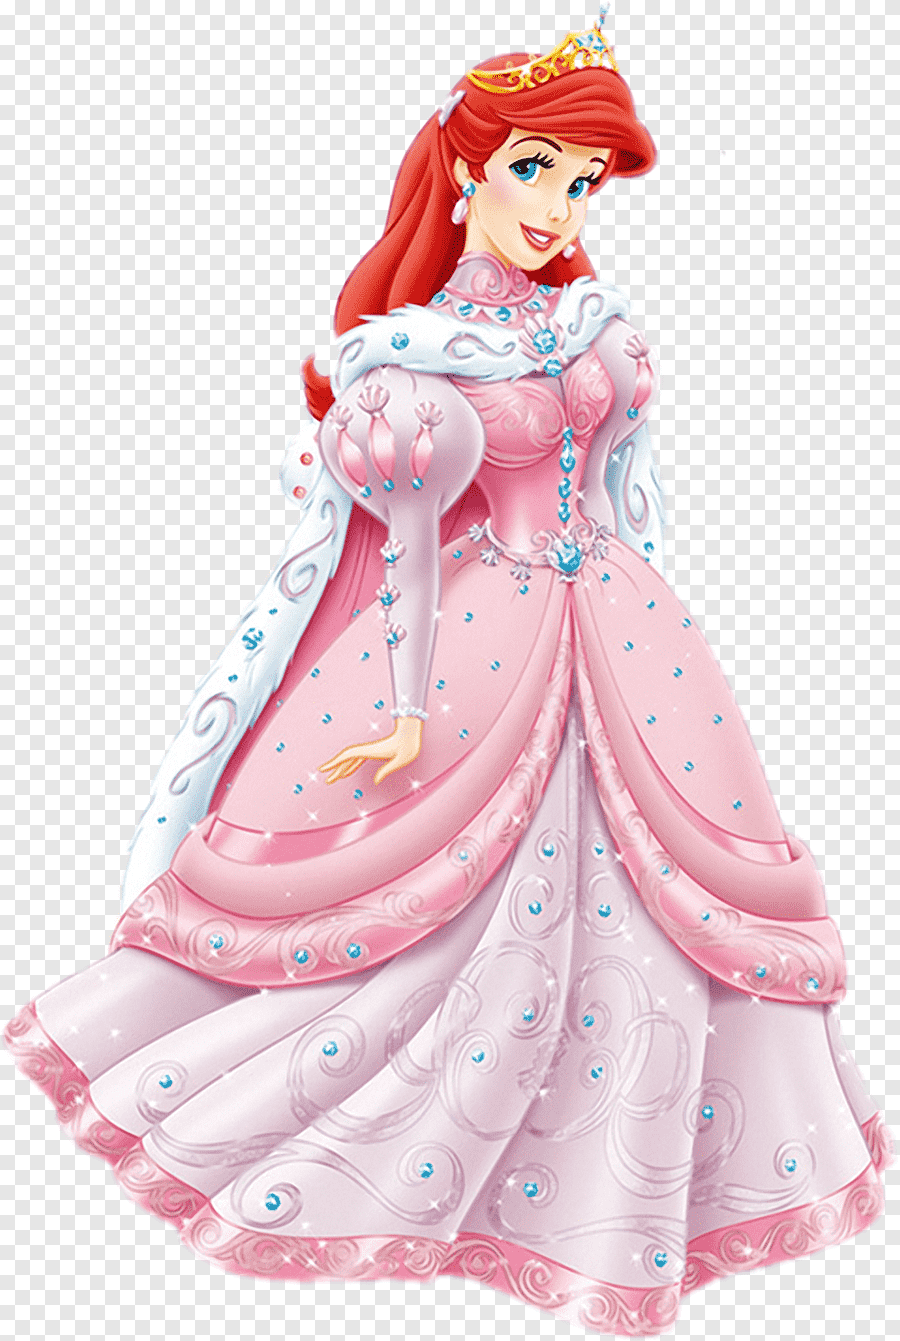 Ariel Belle Princess Aurora Minnie Mouse Mickey Mouse Ariel S Disney Princess Cartoon Png Pngegg